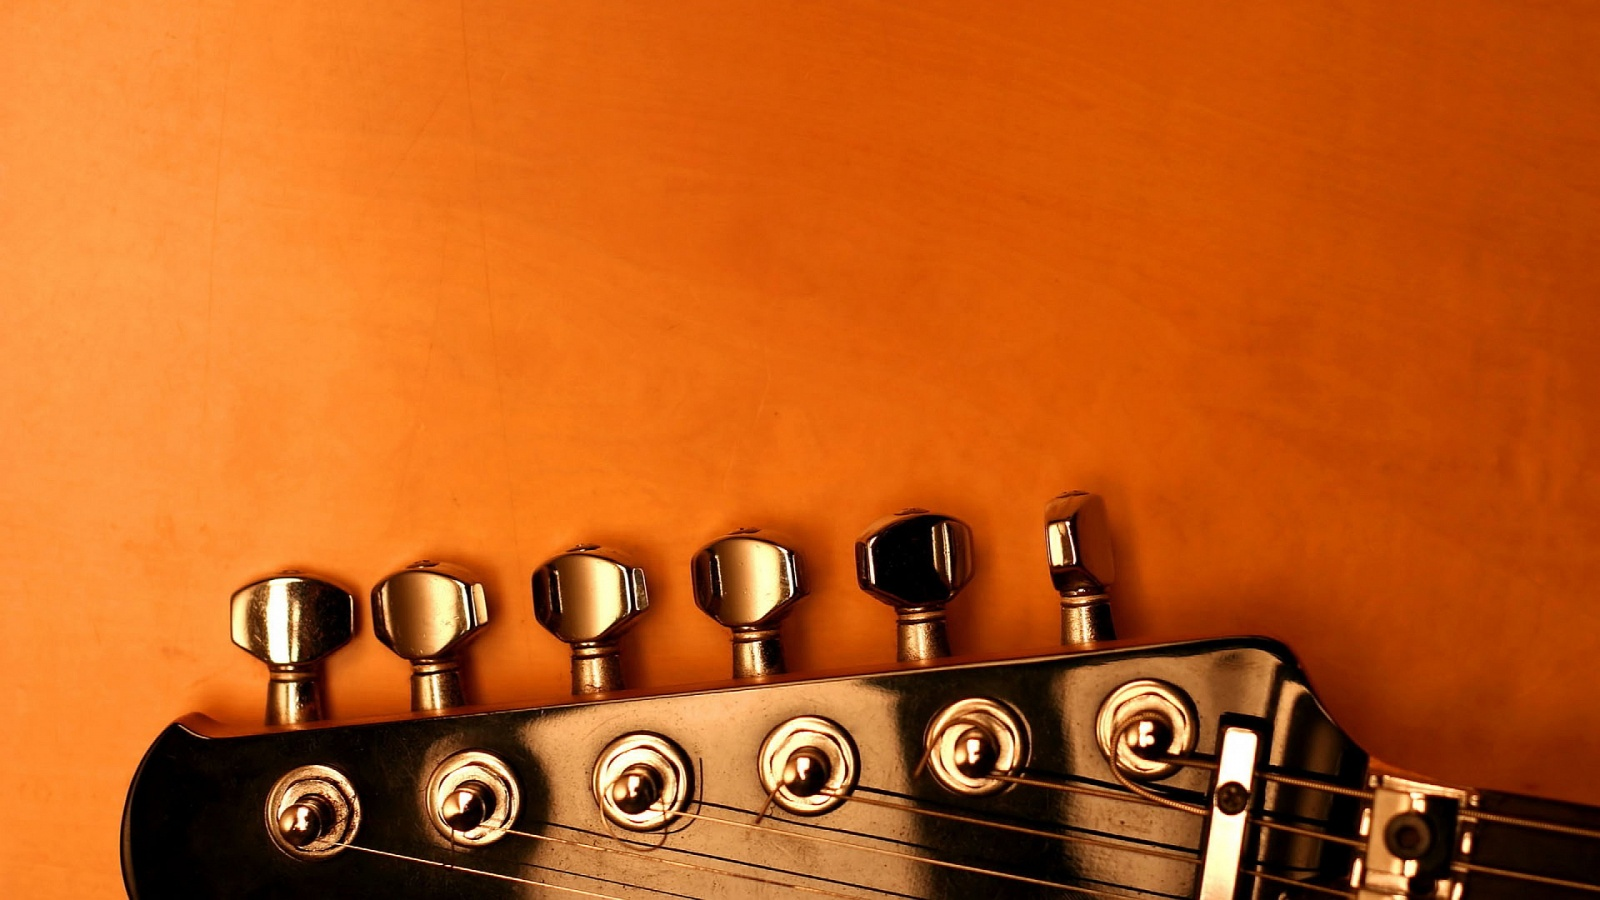 Description: The Wallpaper above is Guitar tuning keys Wallpaper in Resolution 1600x900. Choose your Resolution and Download Guitar tuning keys Wallpaper